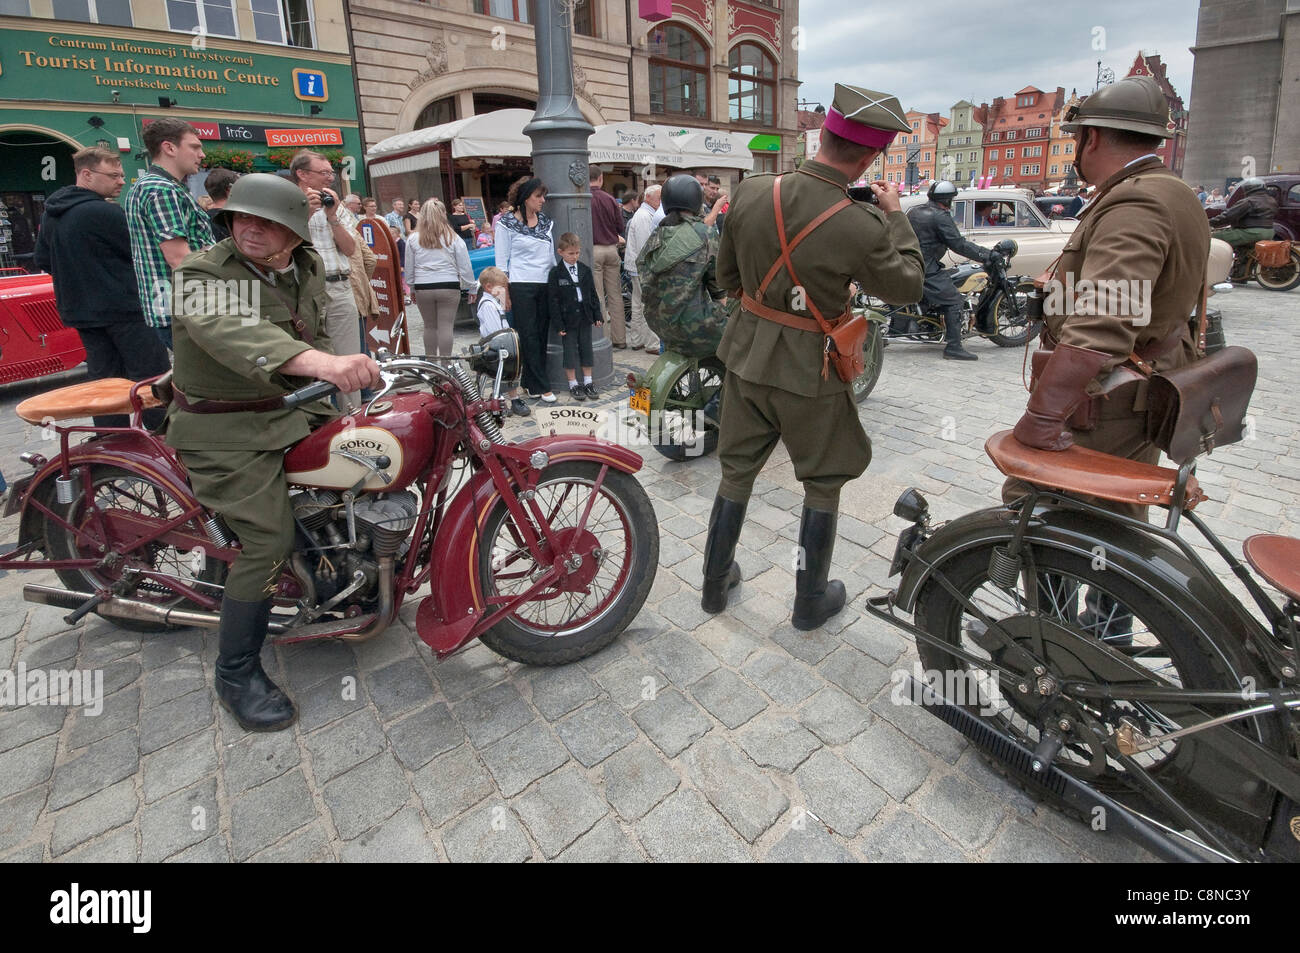 1930s Sokol 1000 Polish motorcycles, men in military uniforms, at Vehicles of Interwar Poland Rally in Wroclaw, - Stock Image